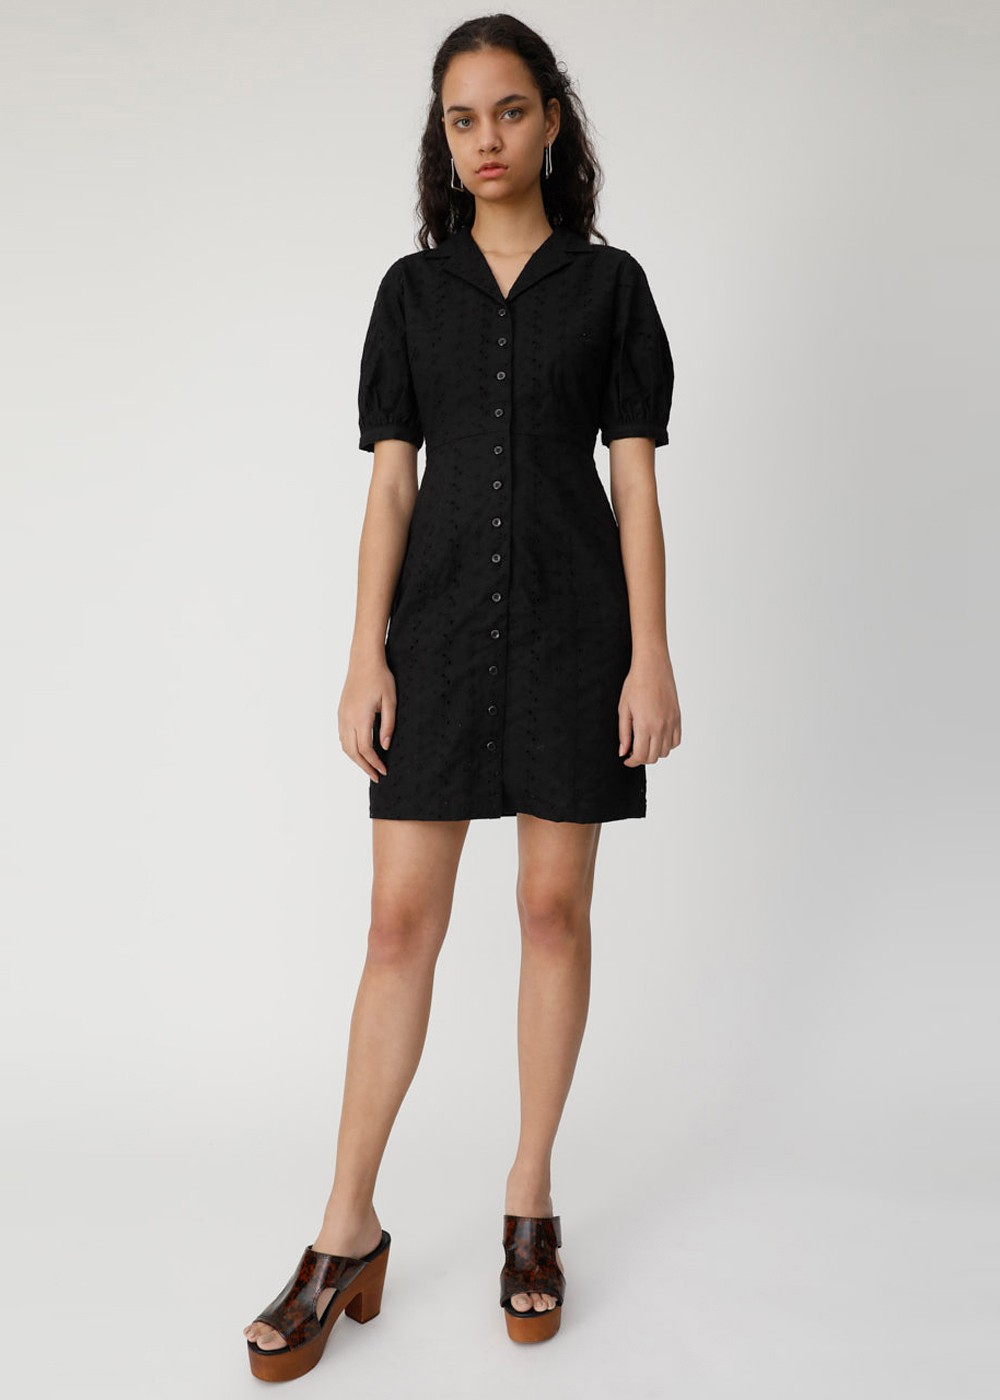 【最大70%OFF】COTTON EMBROIDERY MINI DRESS|BLK|レディースワンピース|MOUSSY